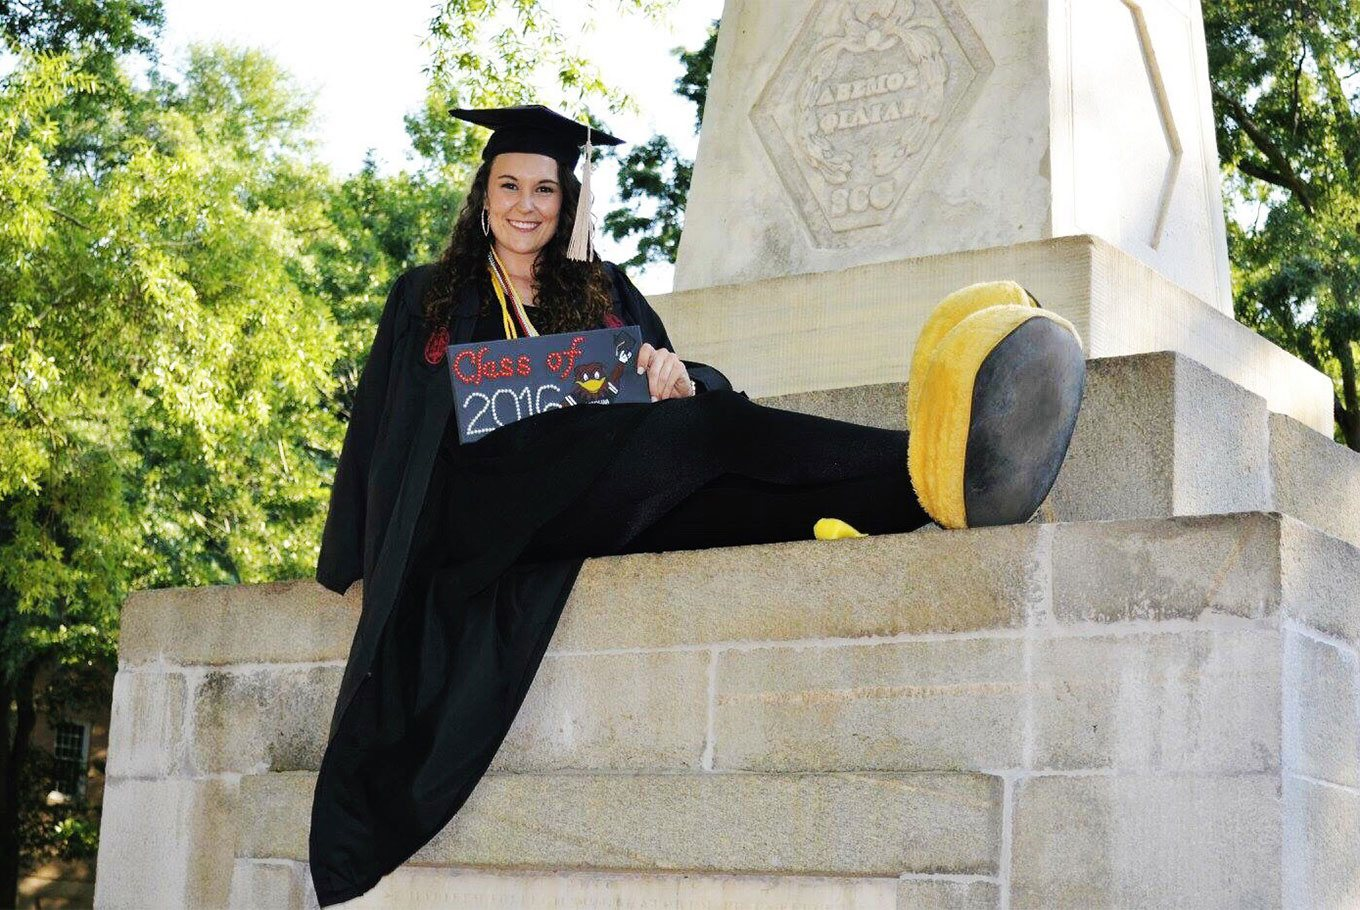 Go after a seemingly unobtainable goal. You never know — you just might get  to graduate with big yellow feet.